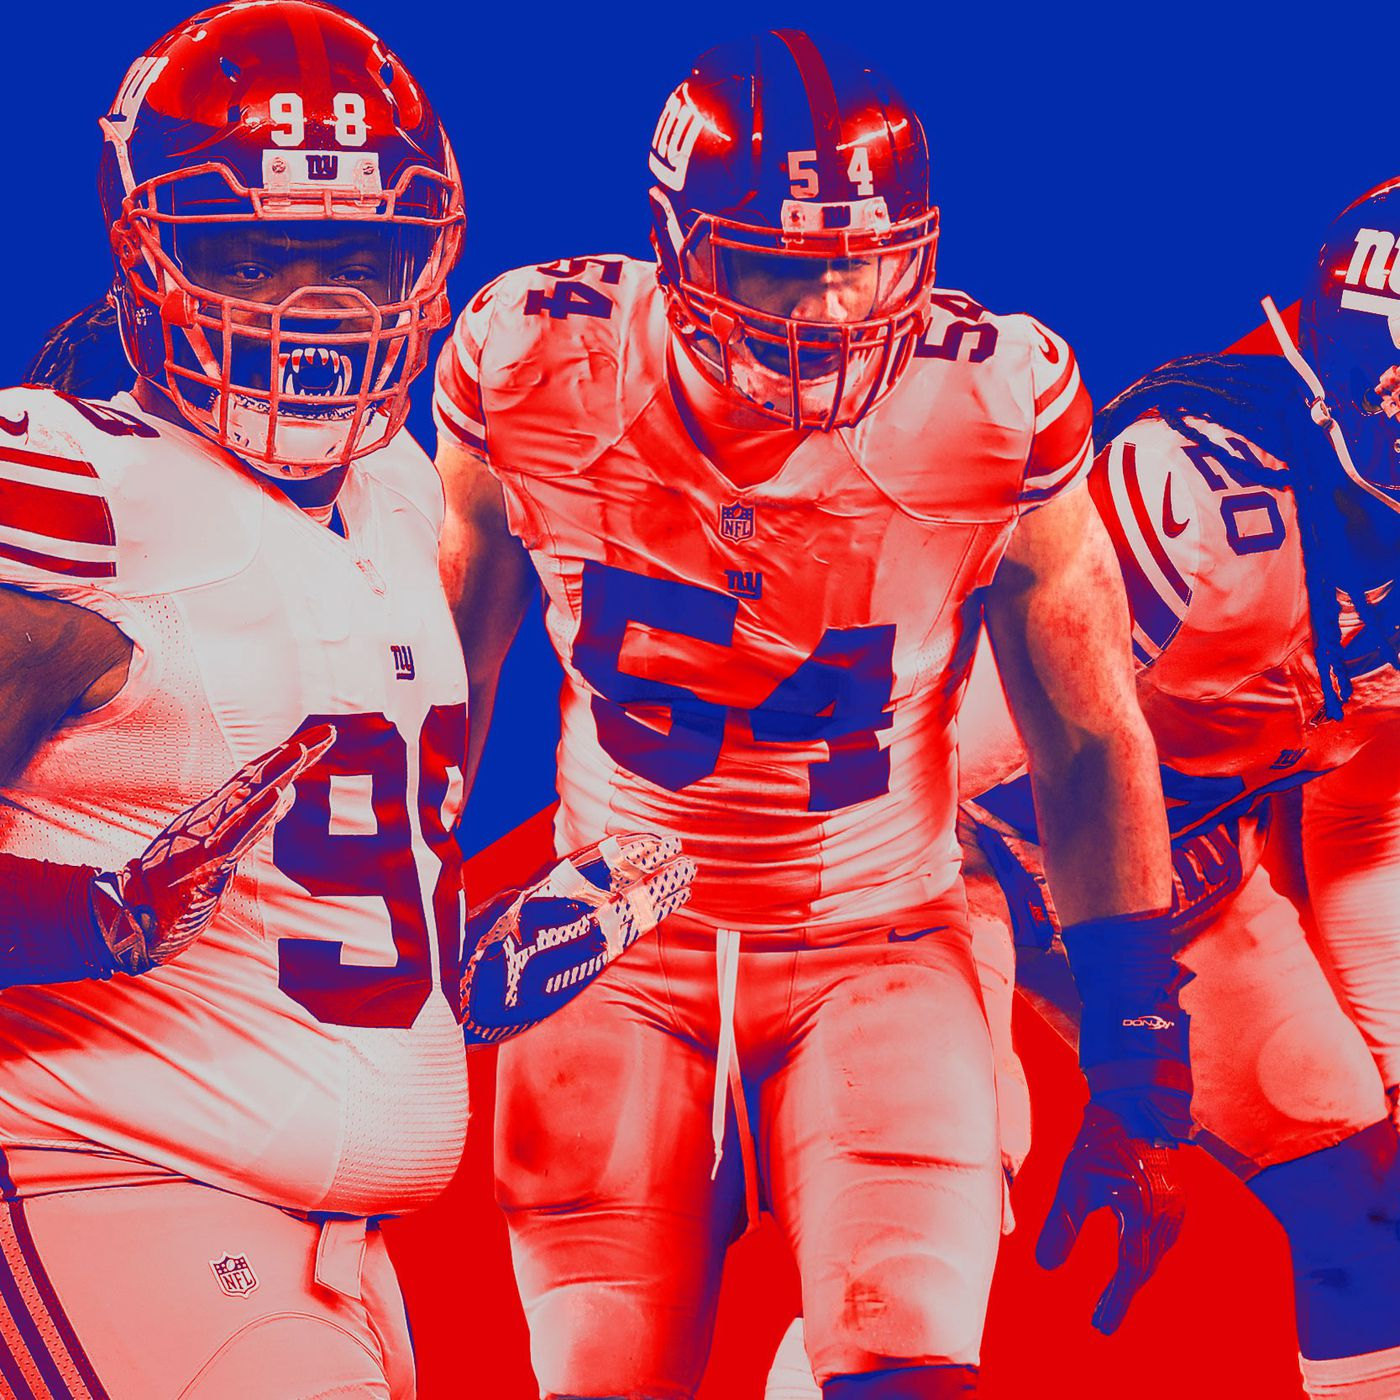 The giants 2016 free agent class has been historically great the the giants 2016 free agent class has been historically great the ringer malvernweather Images